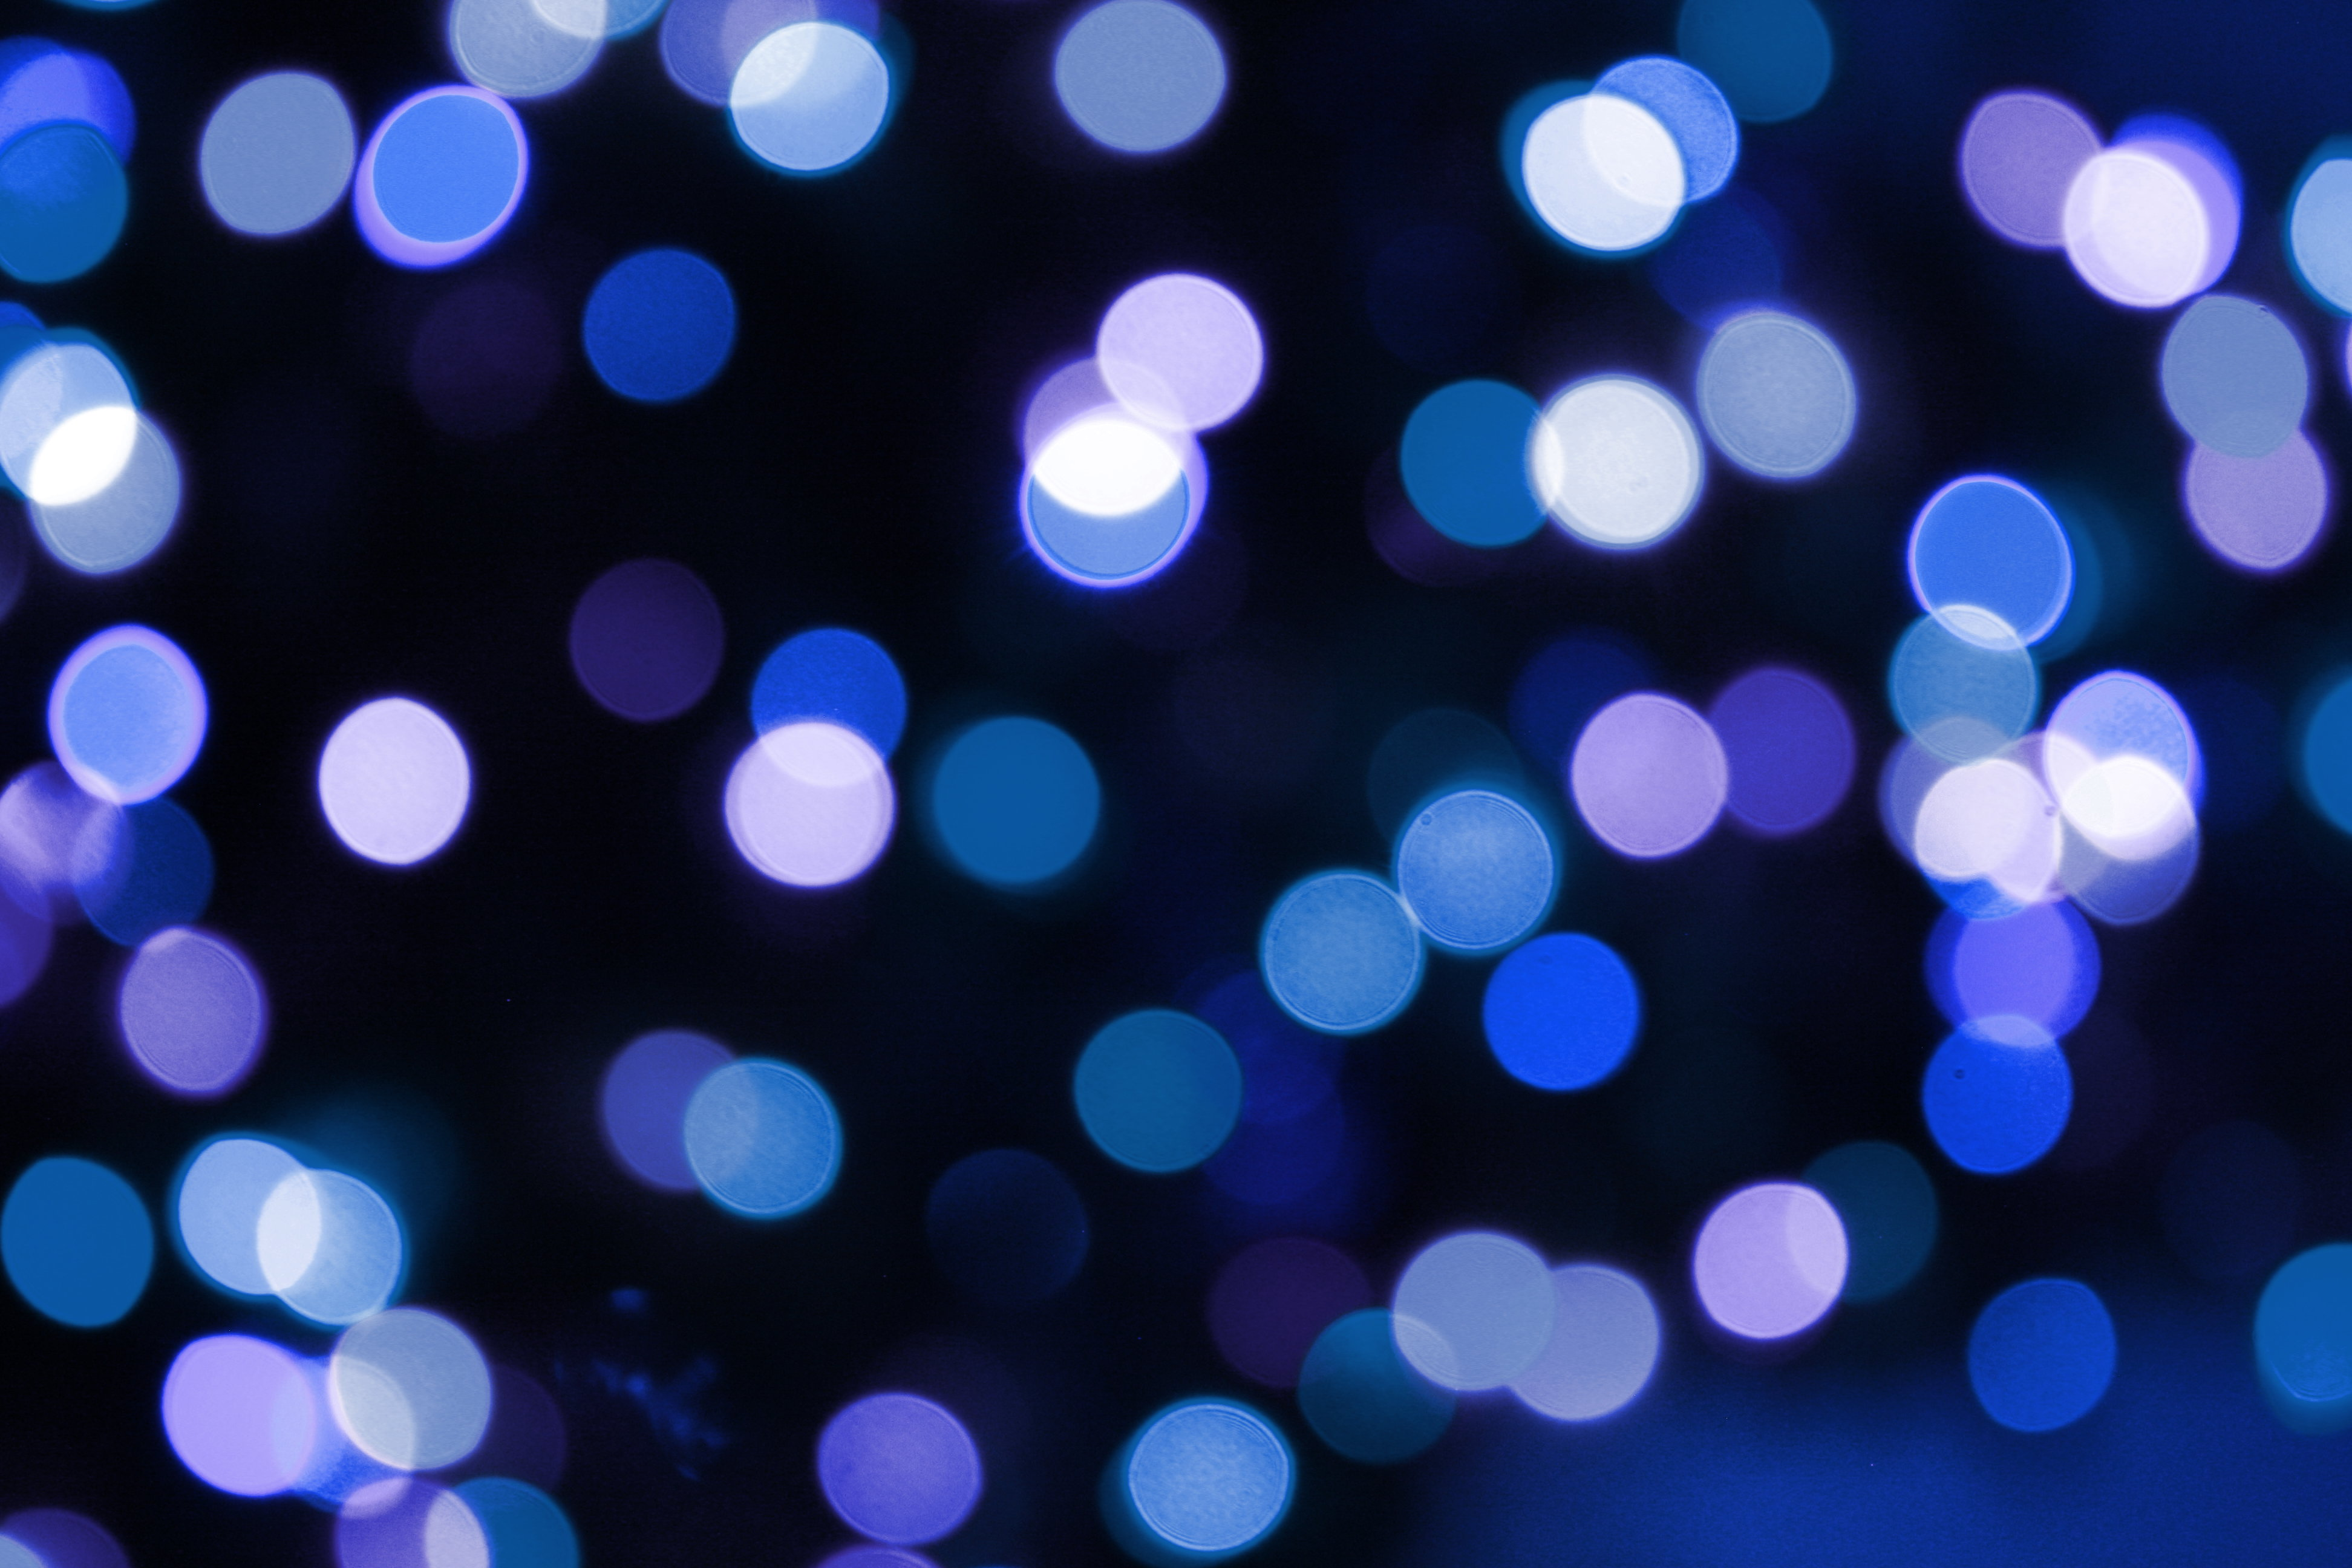 Soft Focus Blue Christmas Lights Texture Picture Free